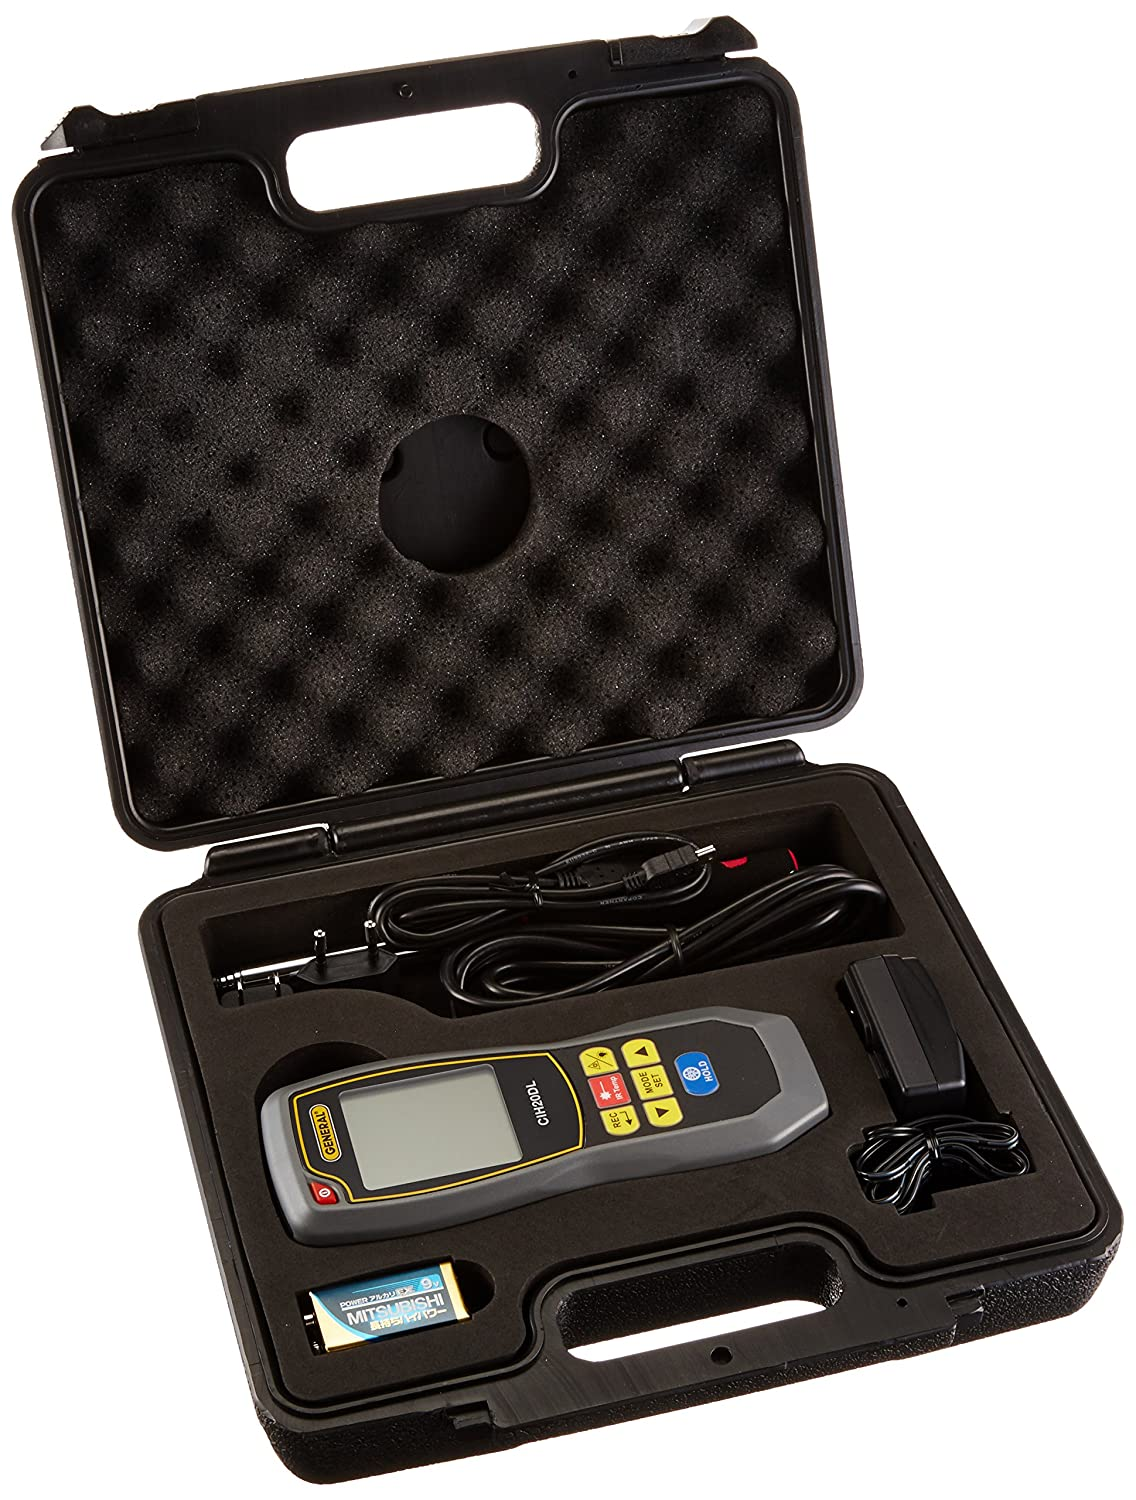 General Tools CIH20DL Hot Wire Data Logging Anemometer with Cfm/Cmm & 8: 1 Irt Thermometer